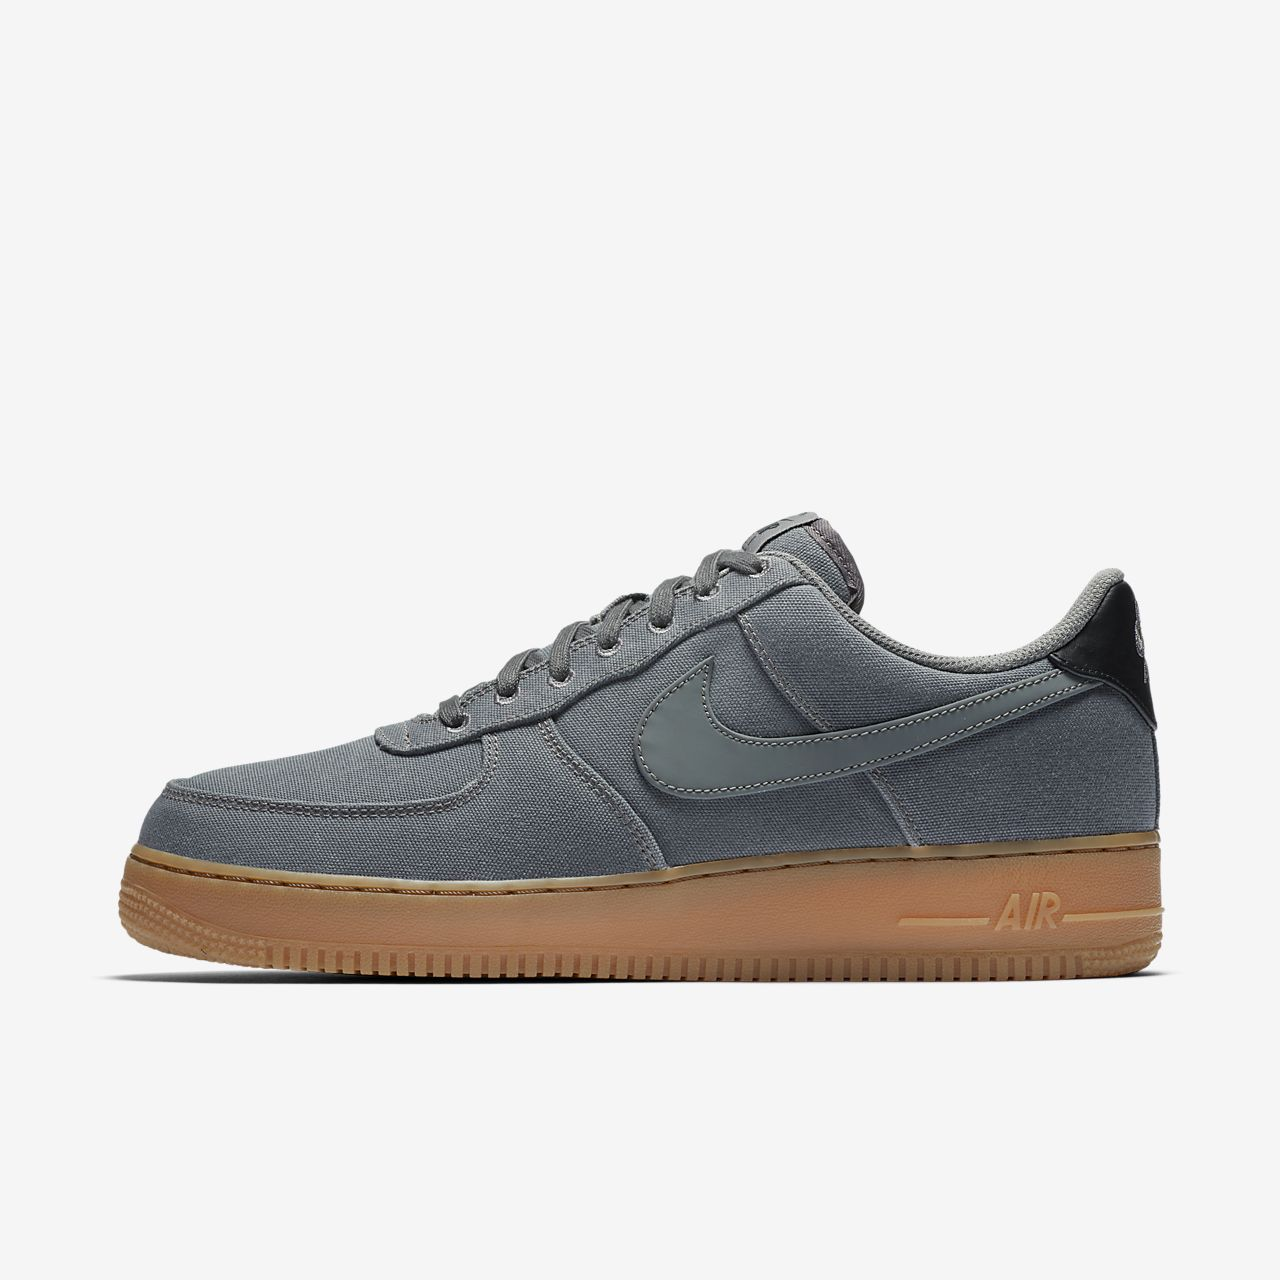 competitive price eabc7 7ce11 ... Chaussure Nike Air Force 1 07 LV8 Style pour Homme